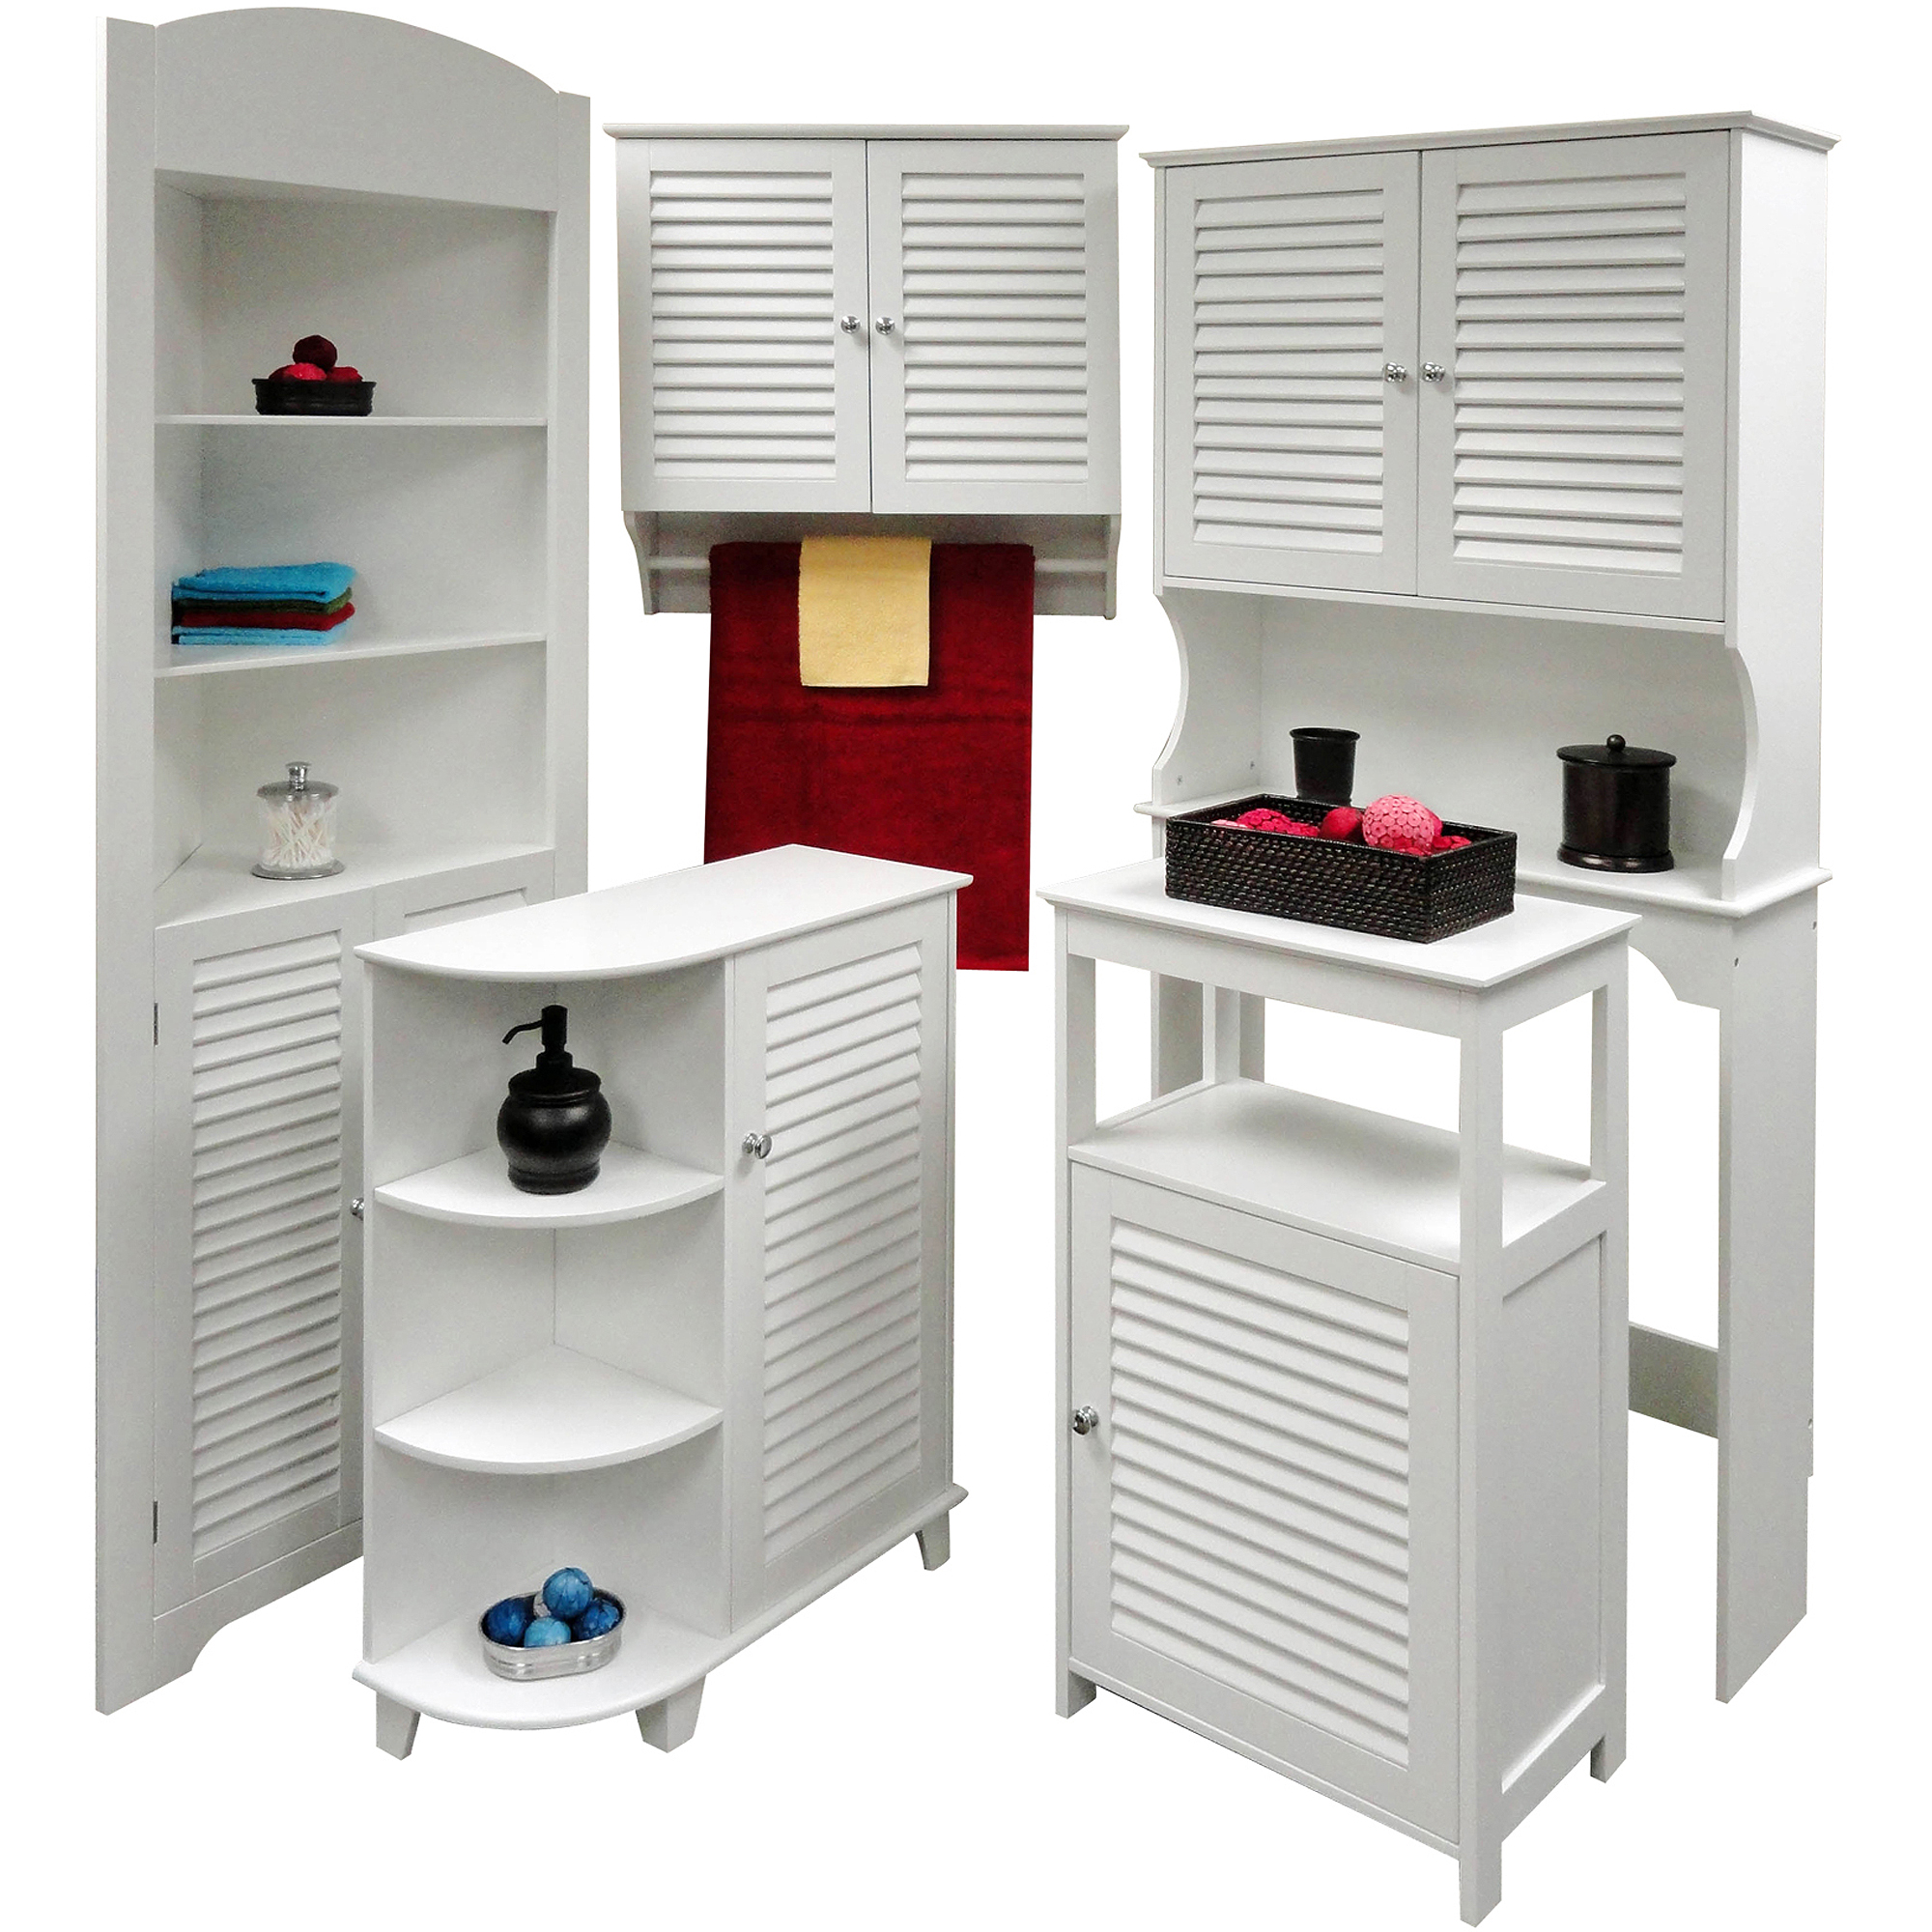 riverridge home ellsworth single door floor cabinet, white